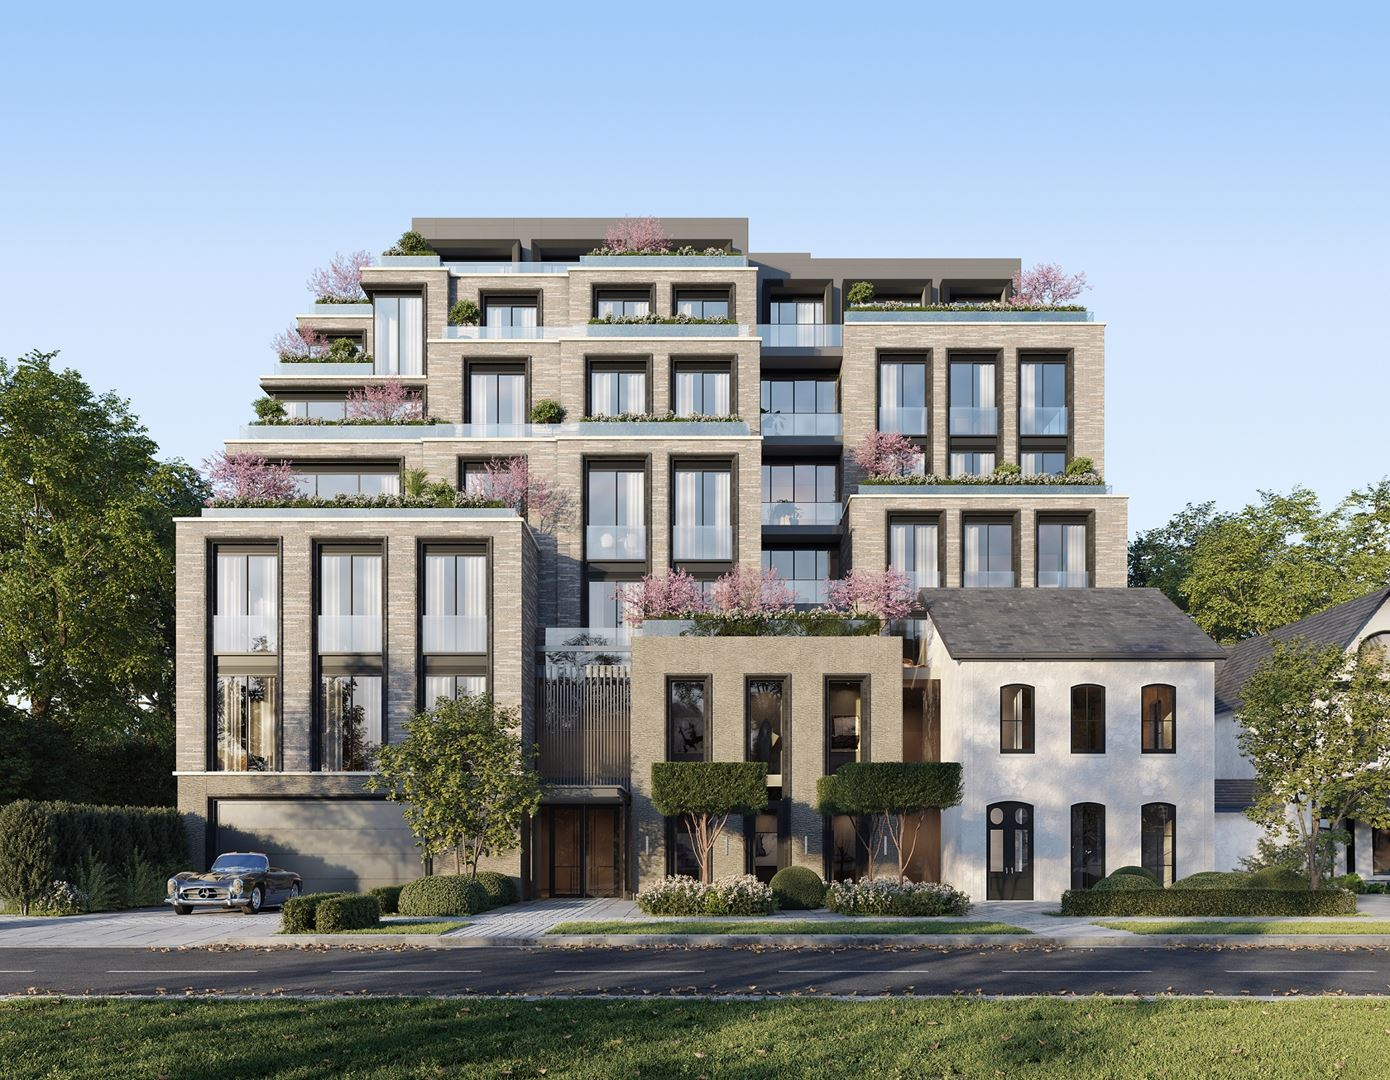 Rendering of 10 Prince Arthur Condos exterior front view.